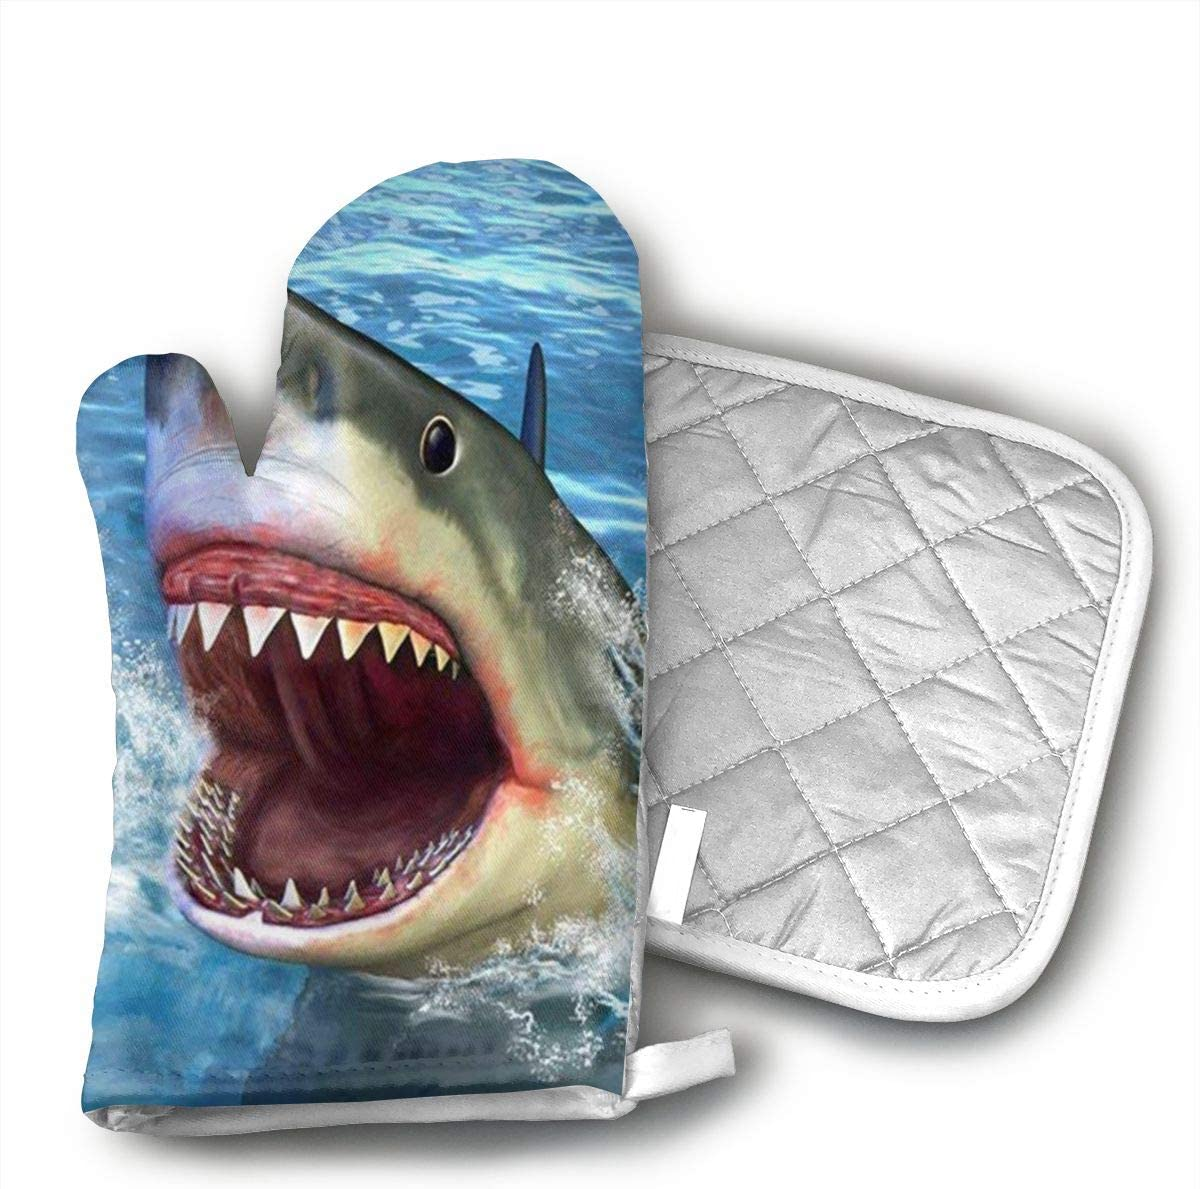 Wiqo9 Blue Shark Oven Mitts and Pot Holders Kitchen Mitten Cooking Gloves,Cooking, Baking, BBQ.